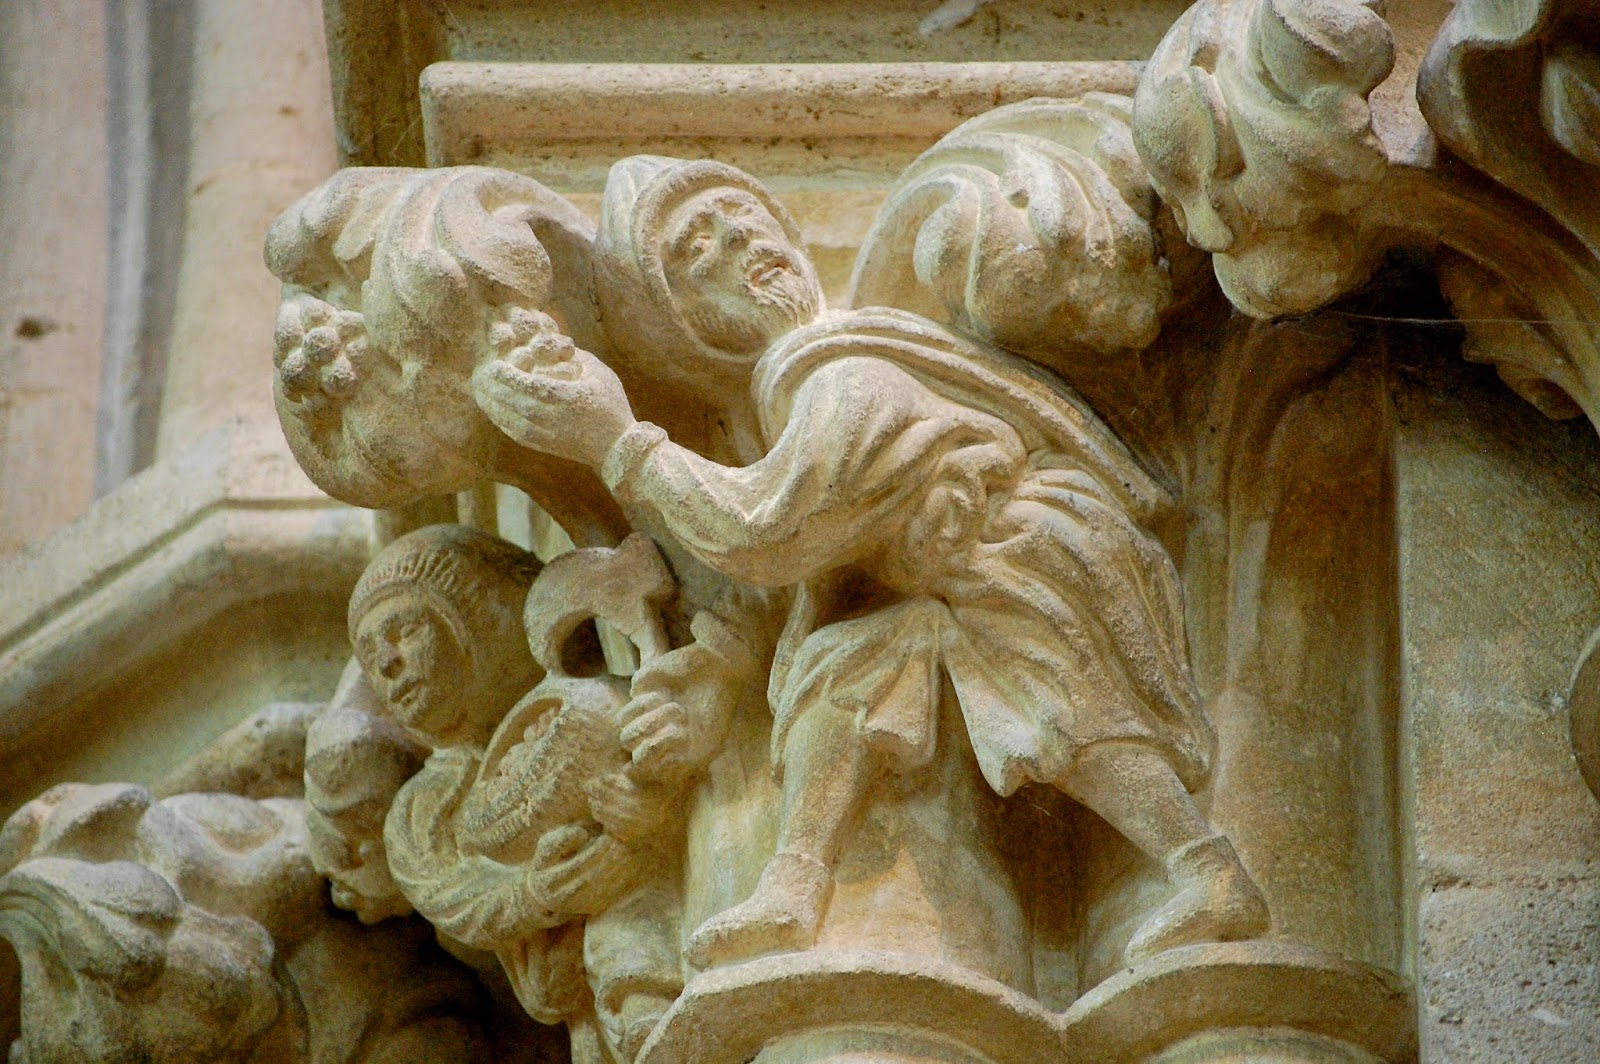 Carving of thieves stealing fruit